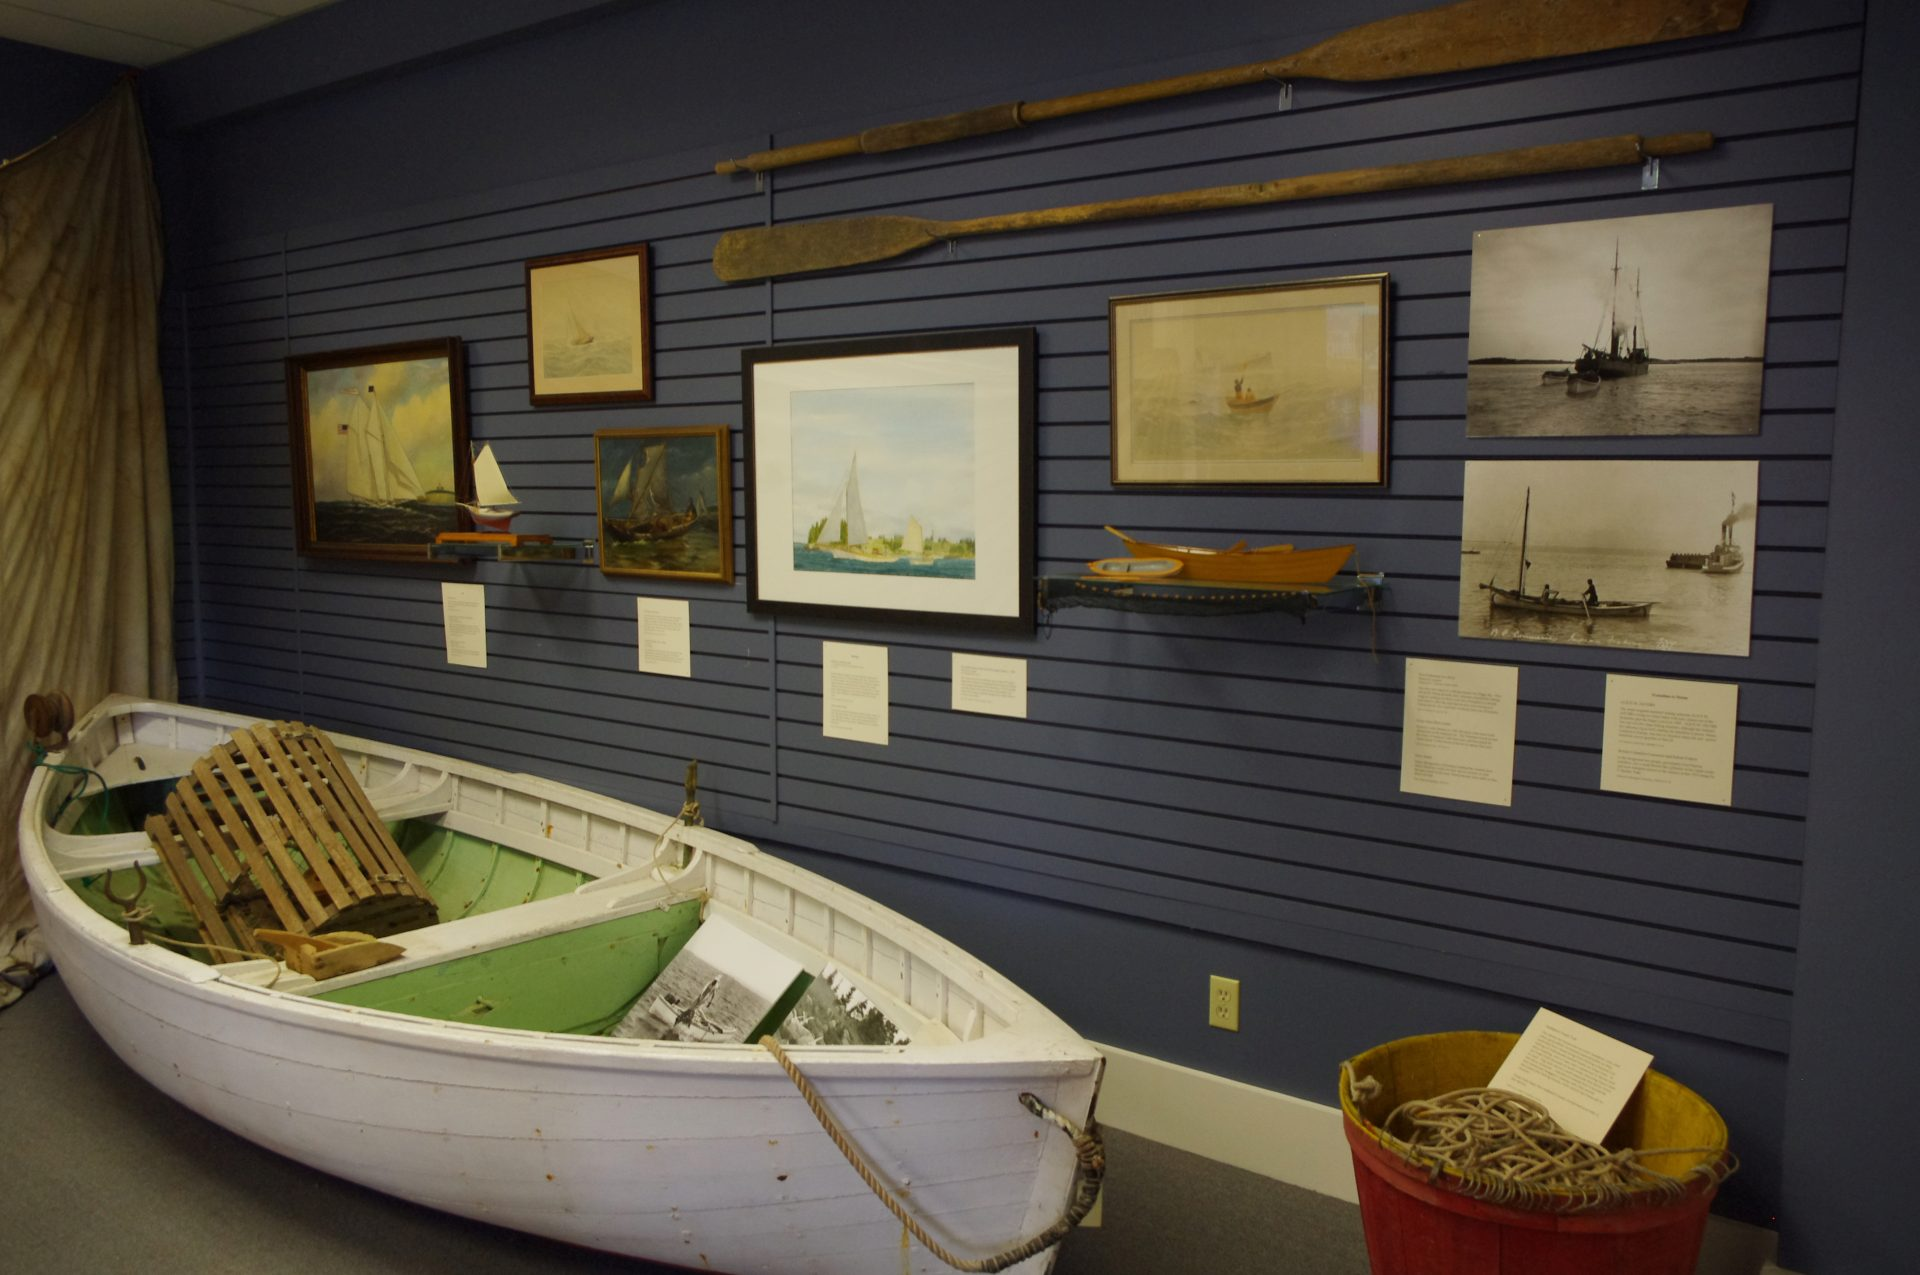 Exhibit on Maine Fisheries at the Penobscot Marine Museum